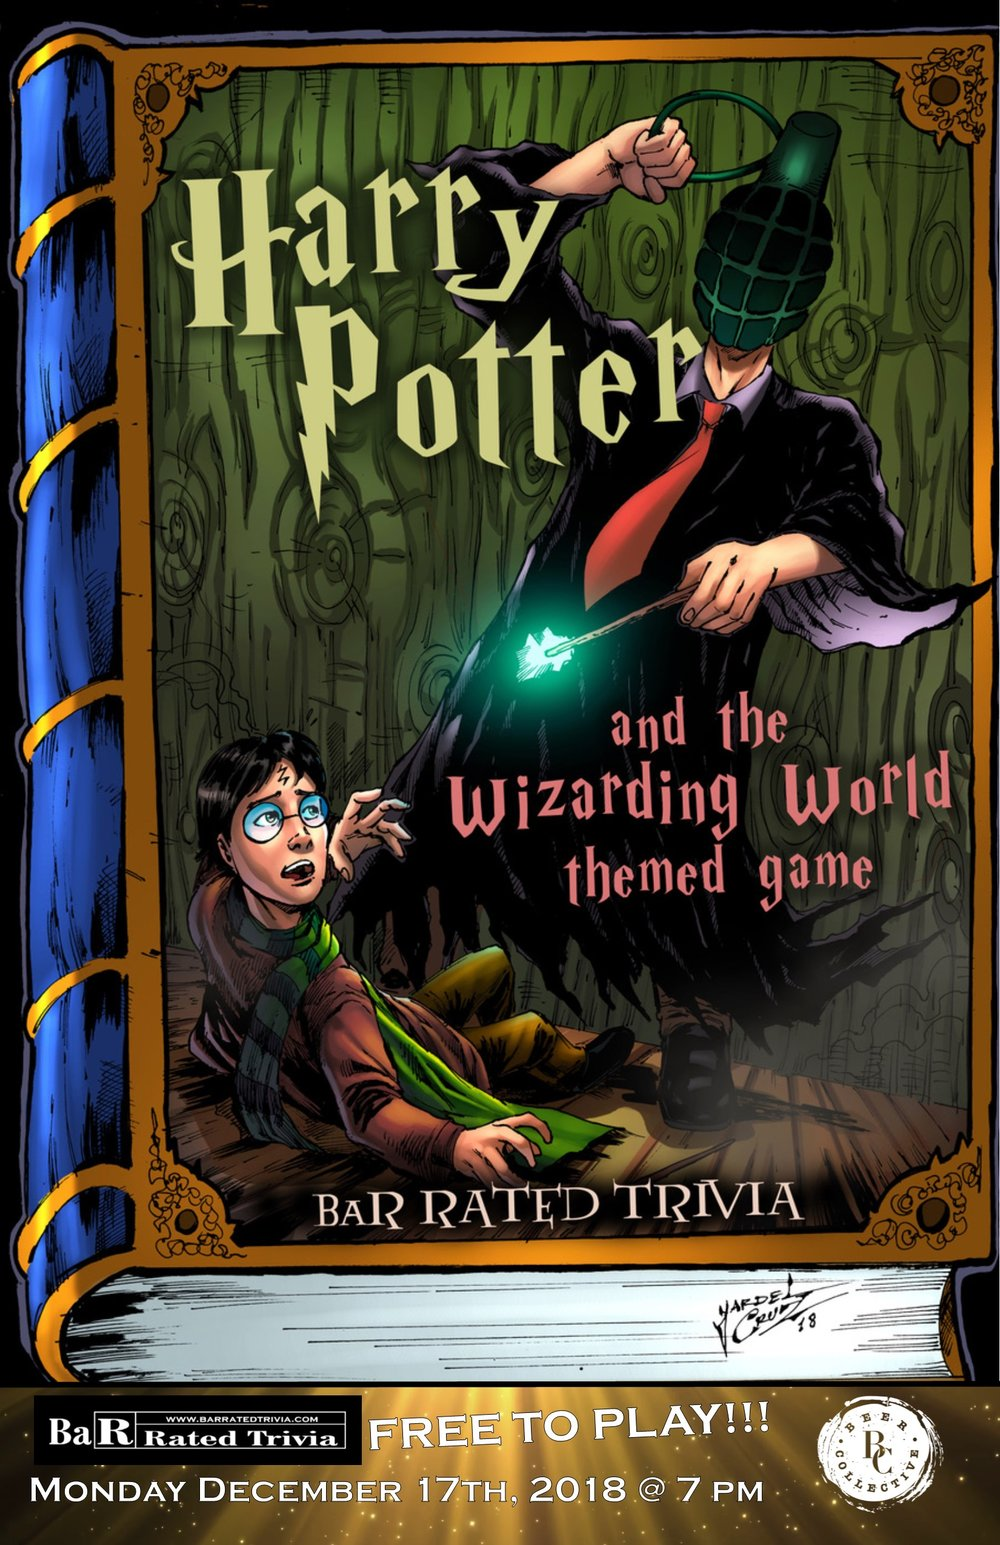 HARRY POTTER Themed Game - 12-17-18 - TBC.jpg